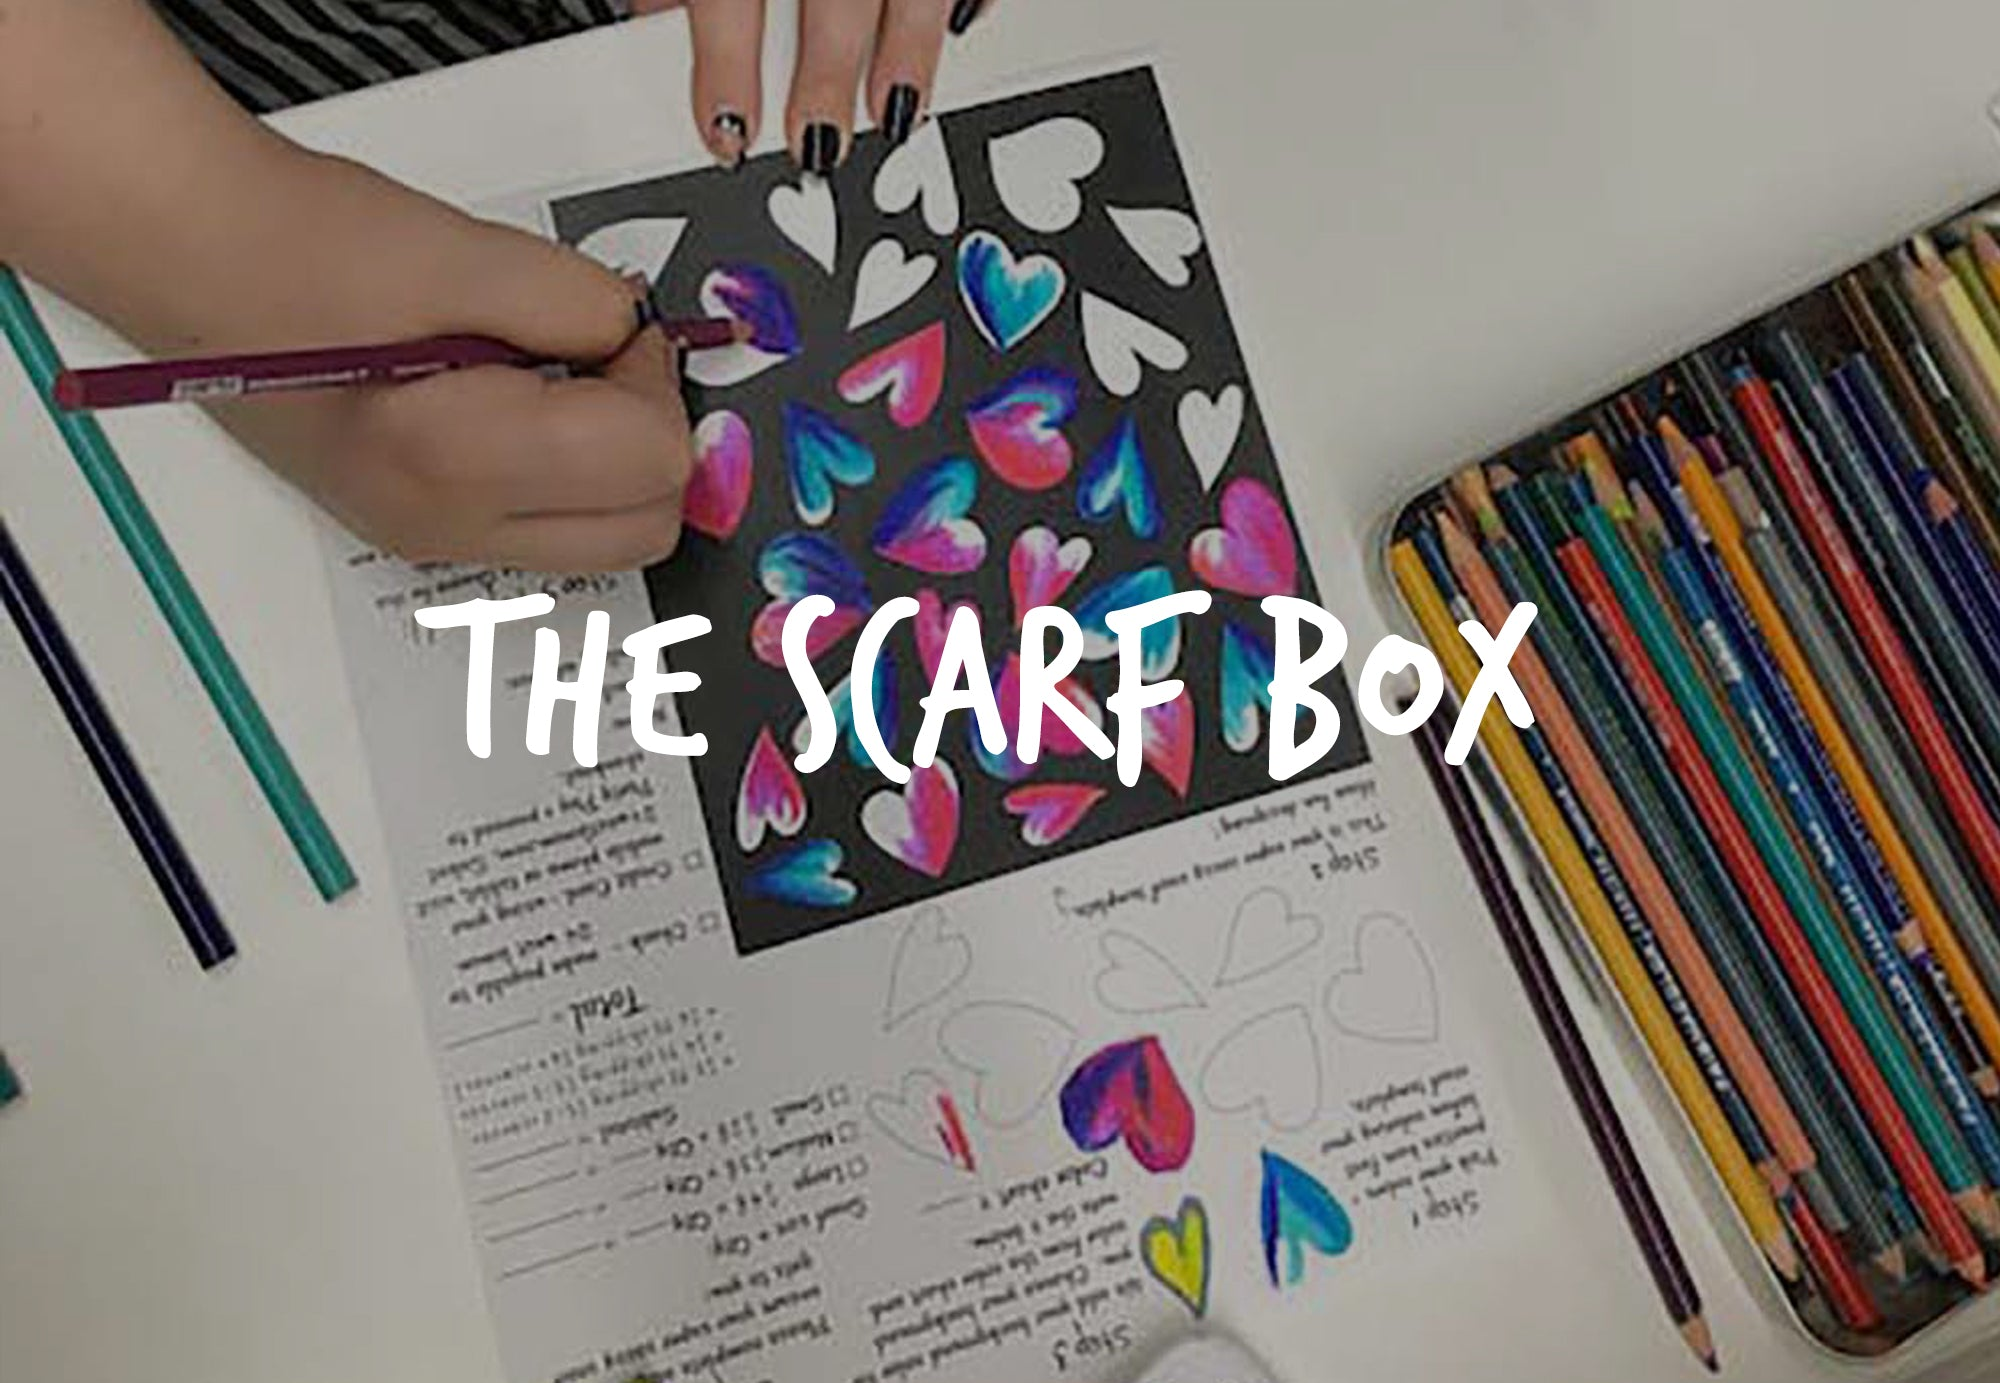 24 West Lemon - How it Works: The Scarf Box